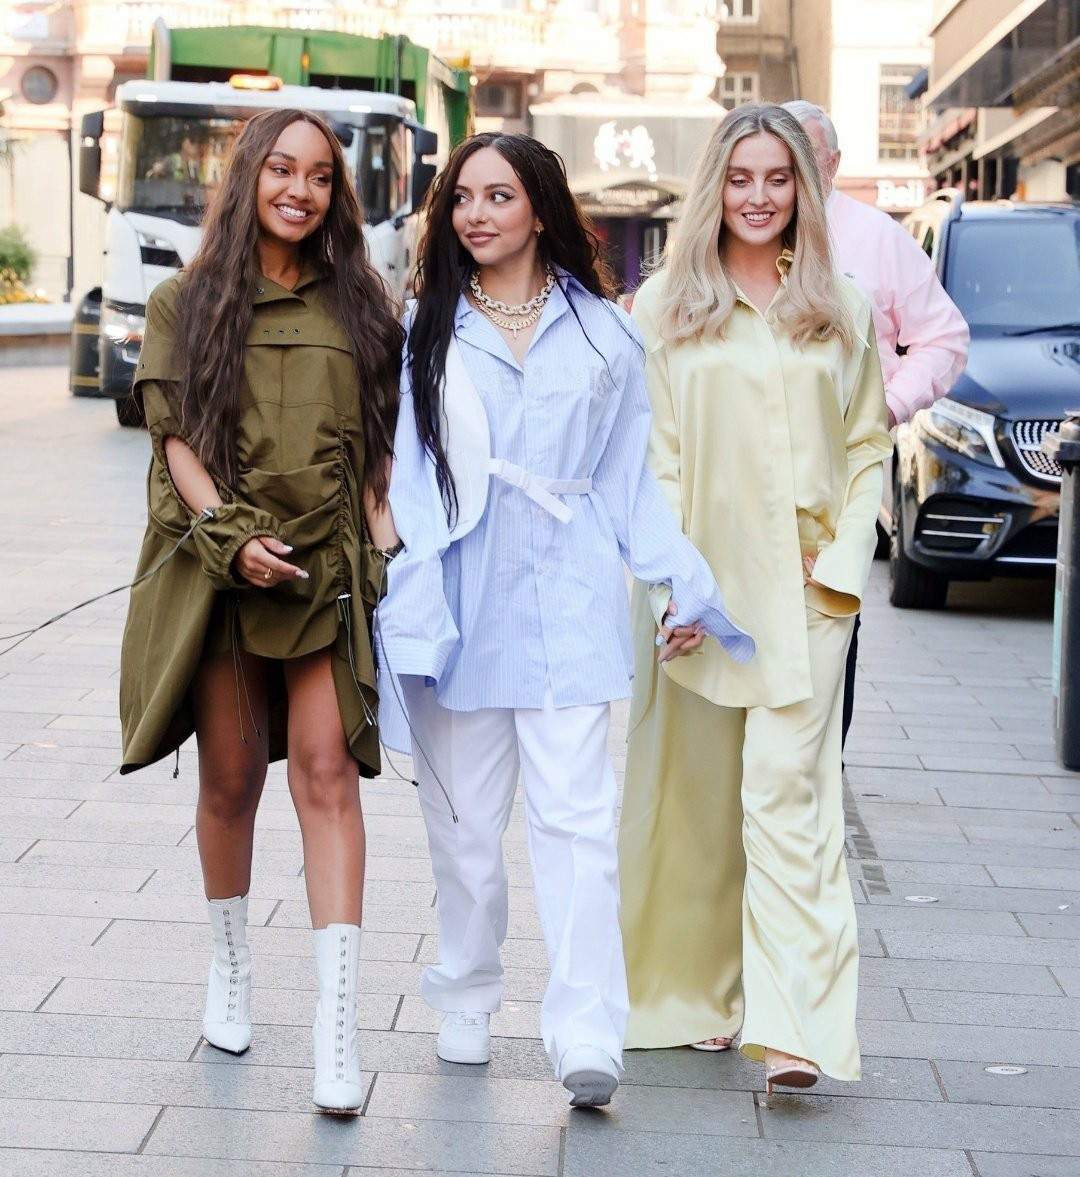 Couture, outfits, and jade thirlwall image